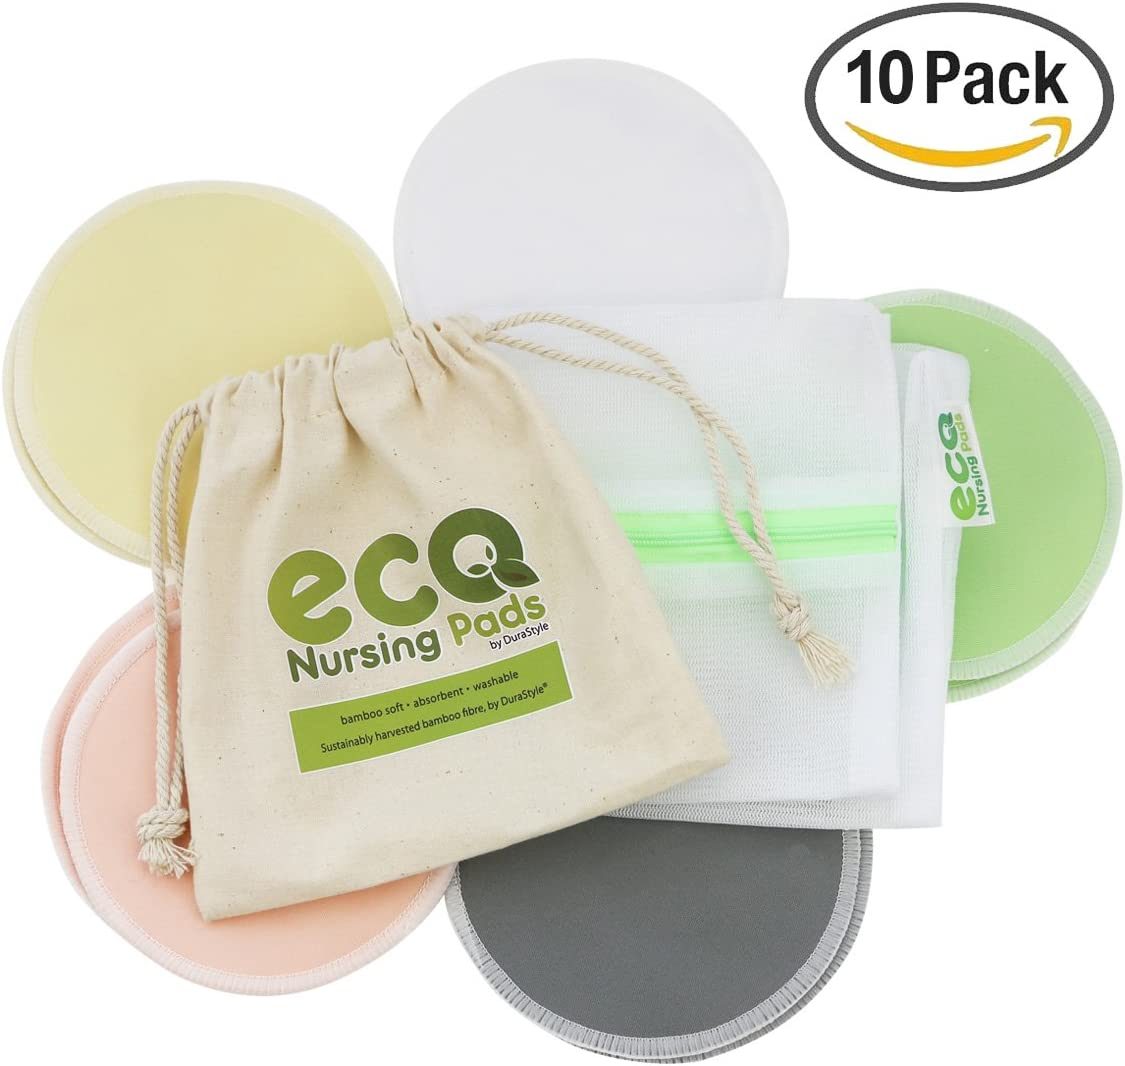 Ultra Soft Organic Bamboo Laundry /& Travel Bag Included Washable Reusable Eco Nursing Pads/™